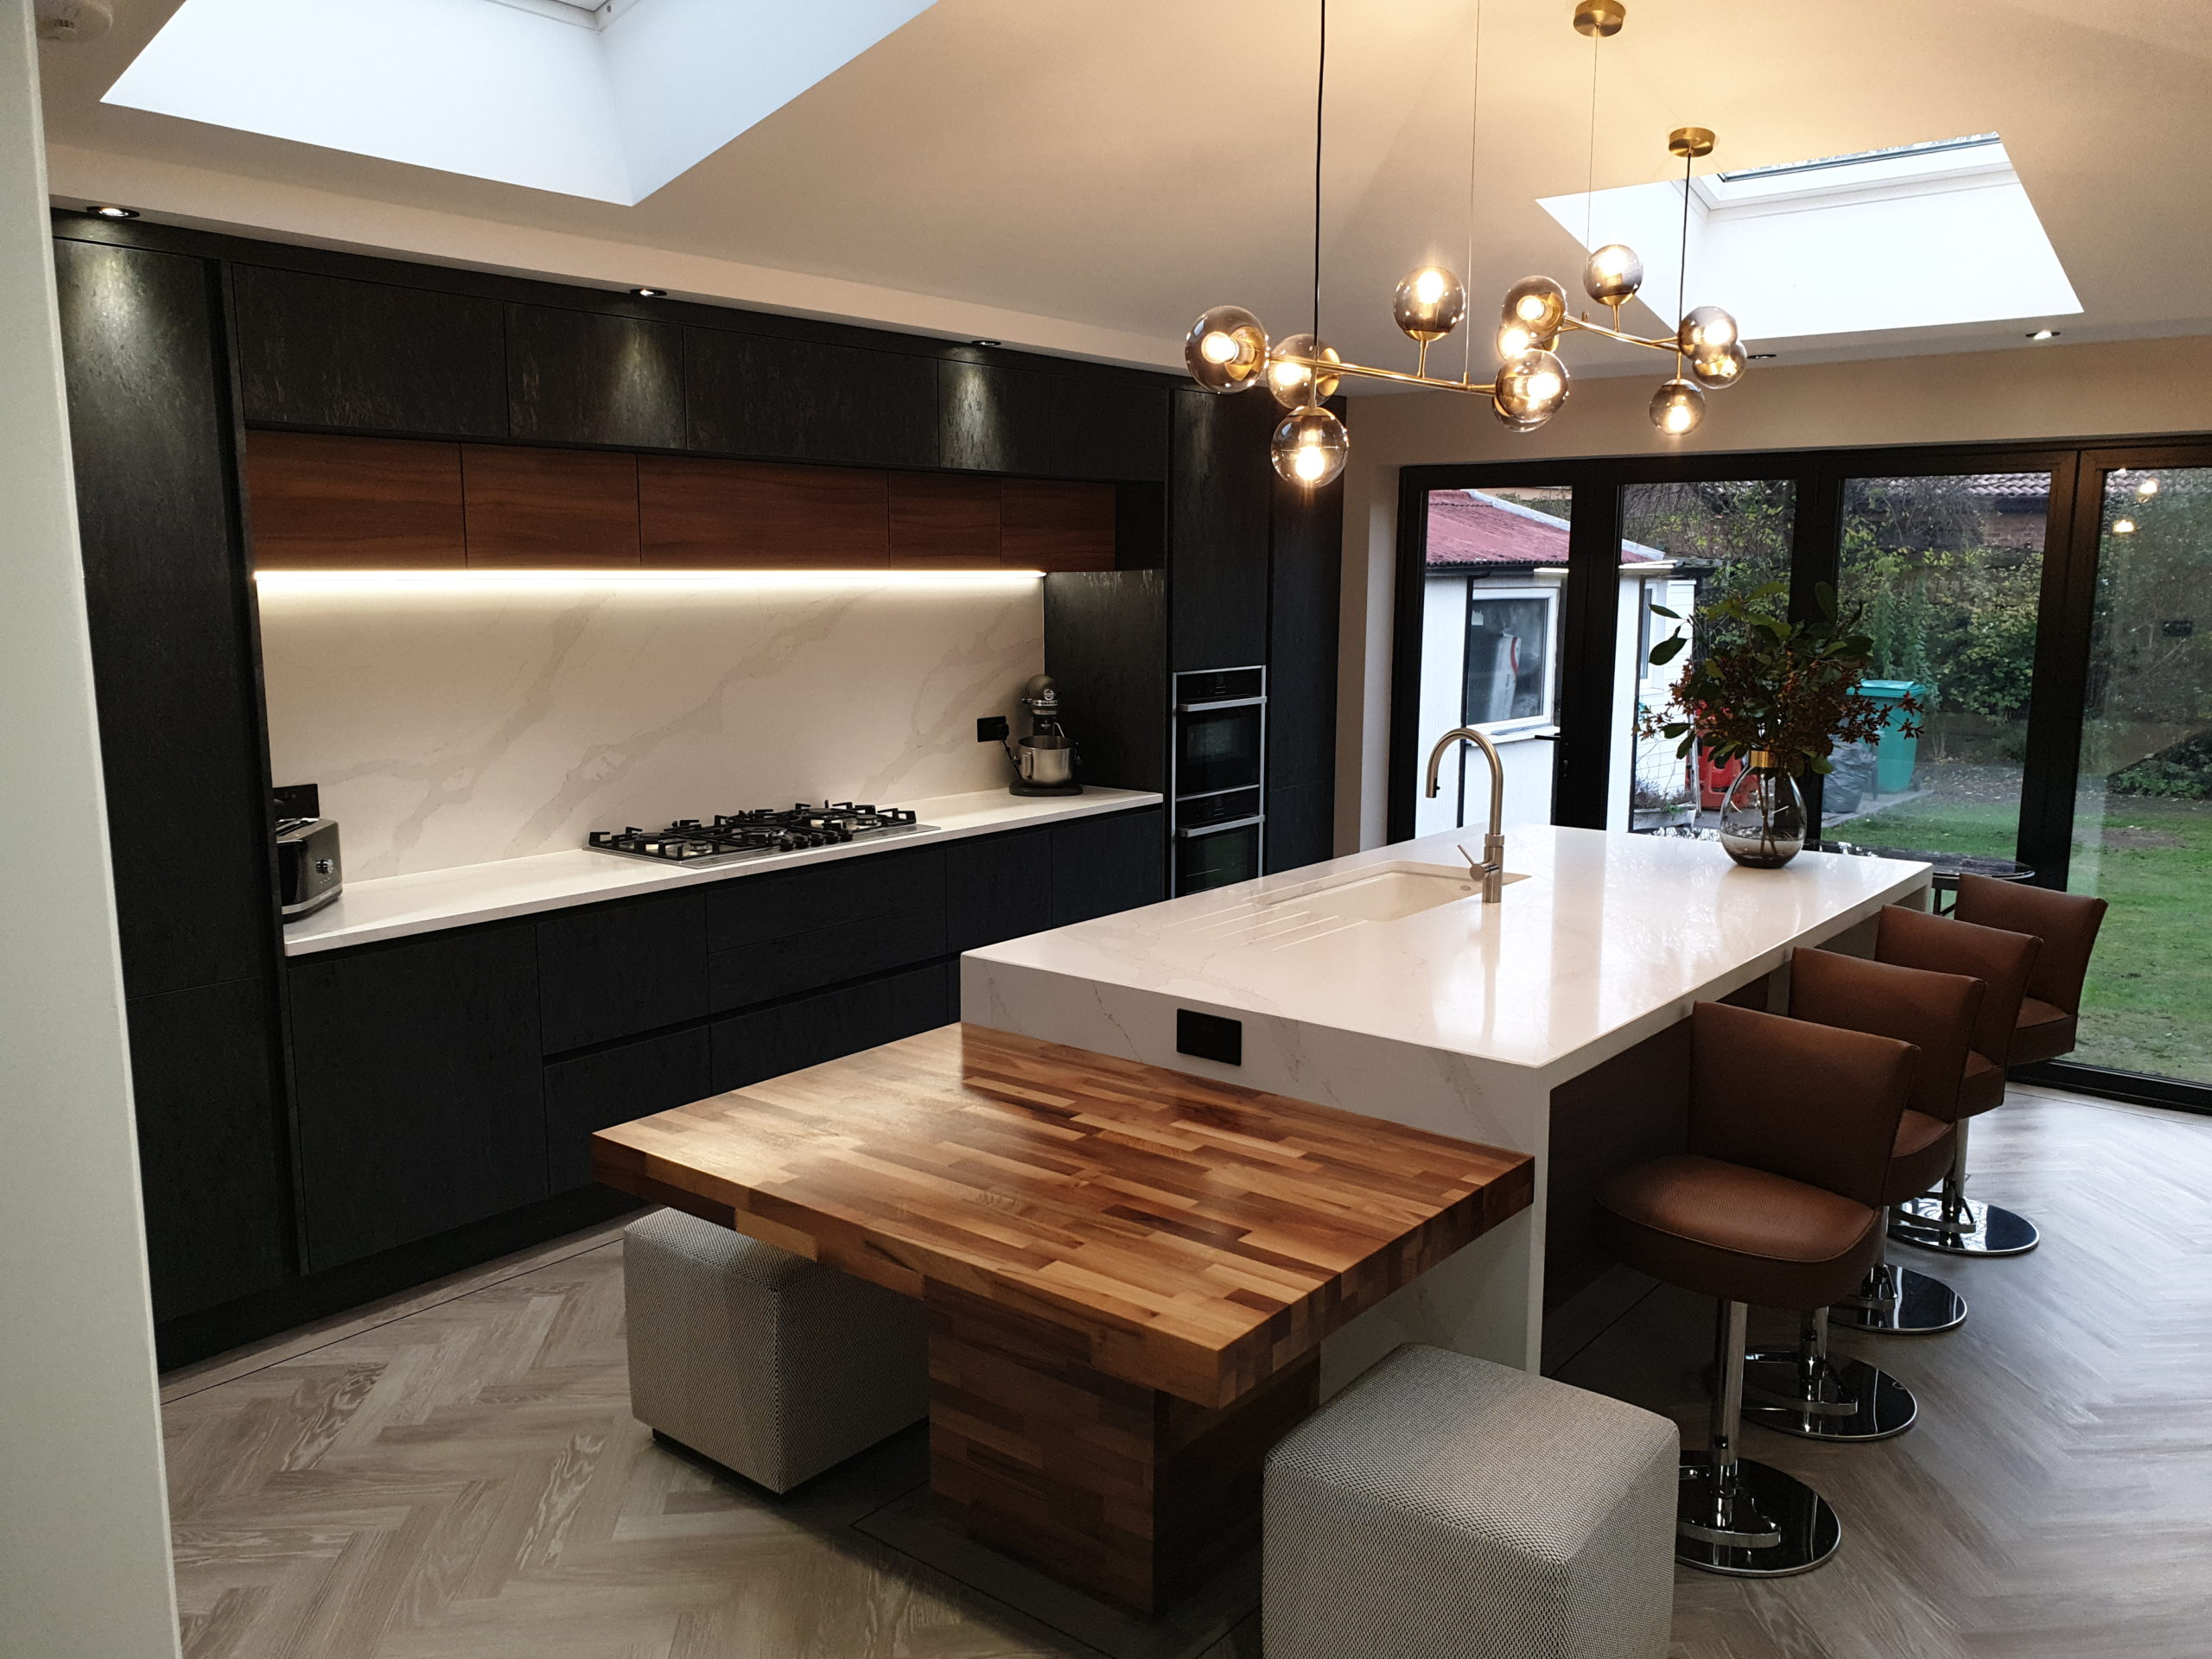 Rich Luxurious Kitchen with Large Island and Split level Seating